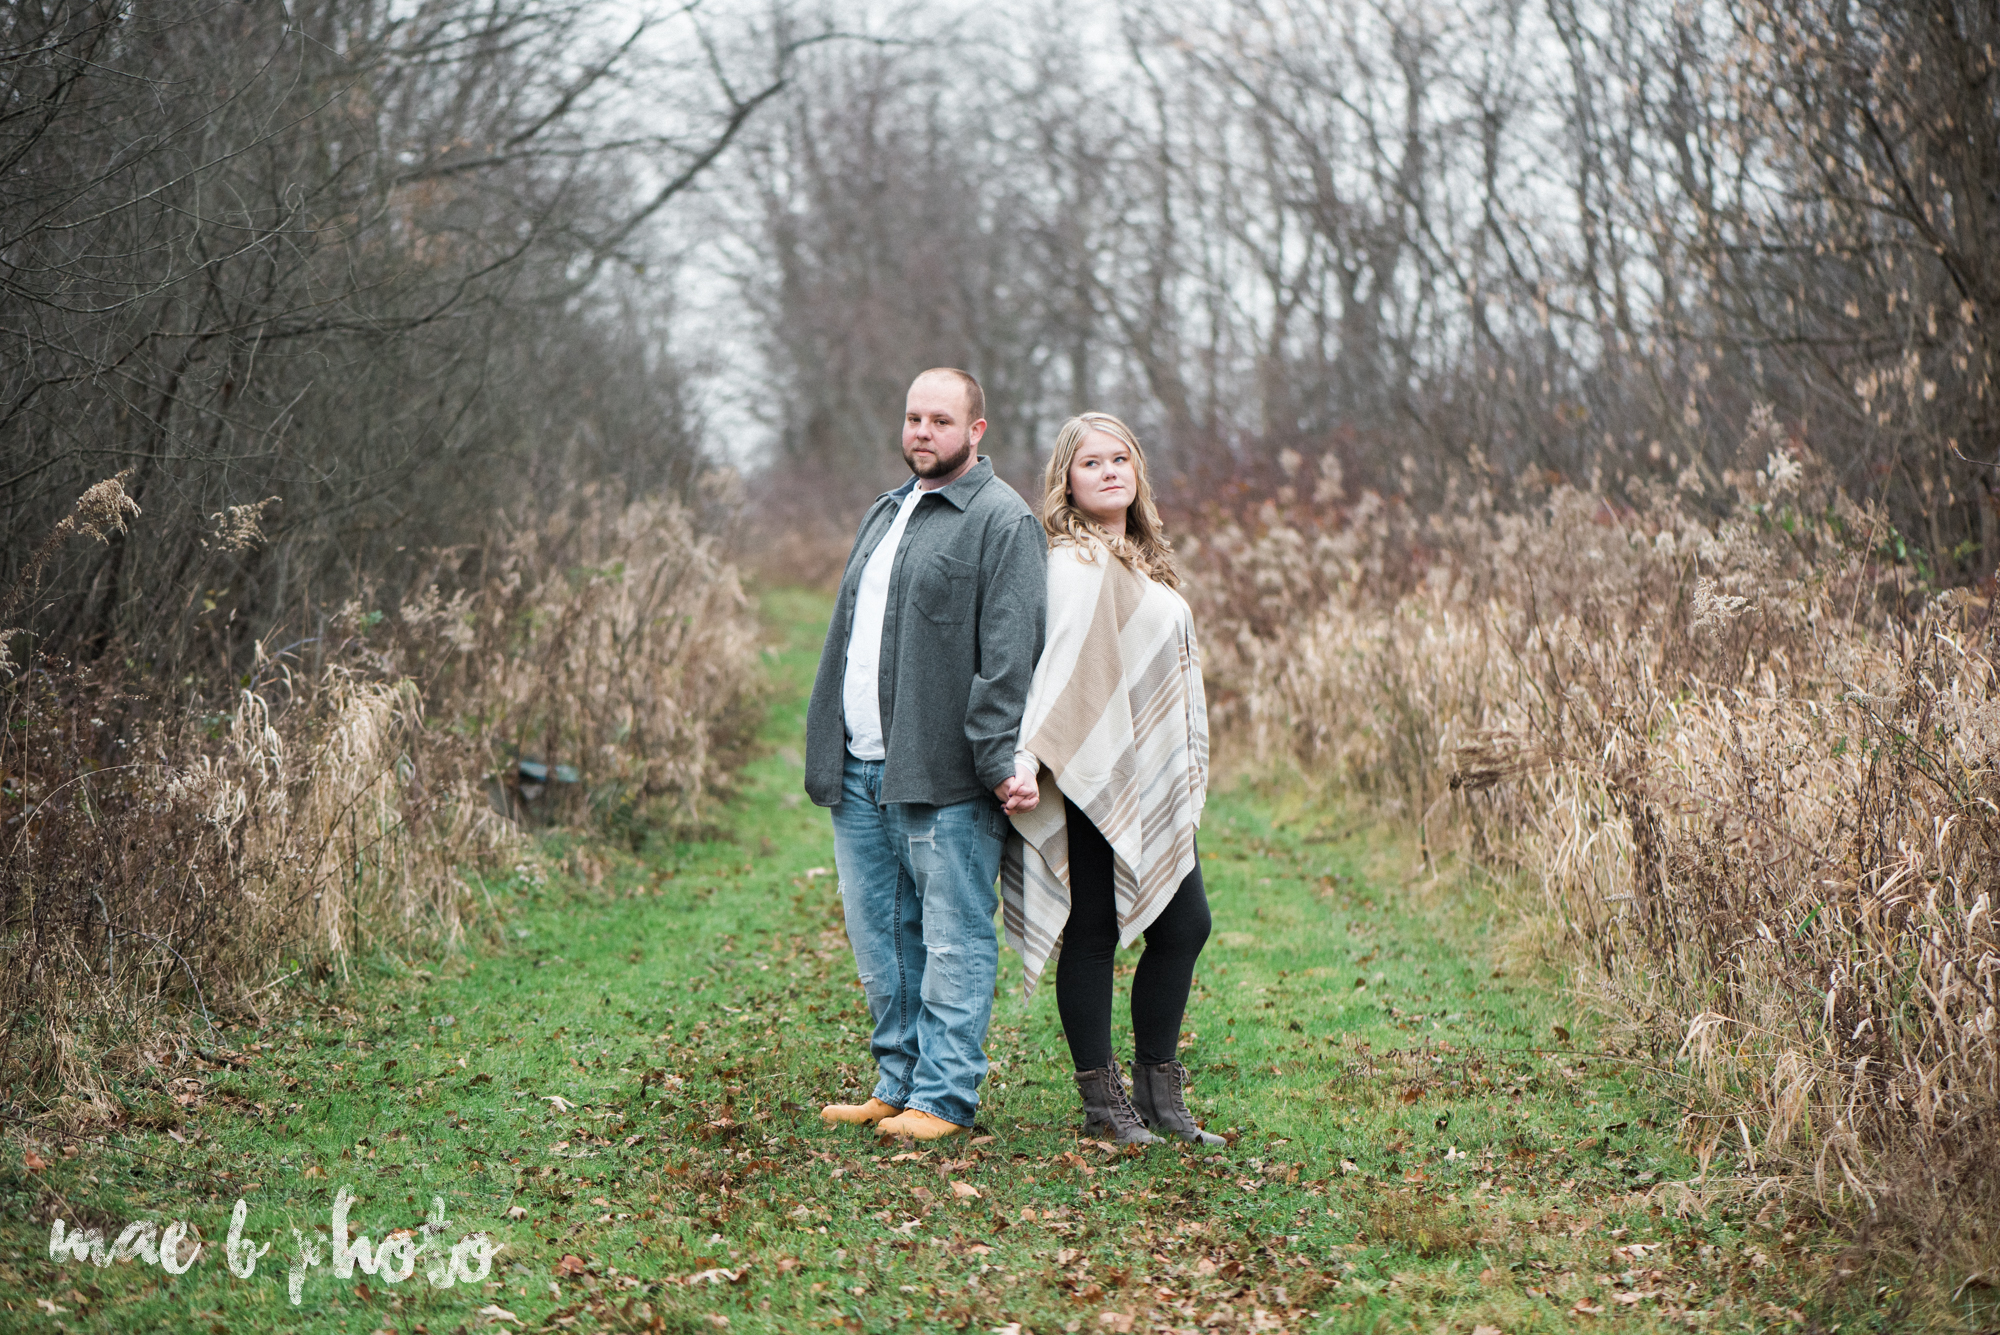 jenna and jay's winter engagement session in mill creek park in youngstown ohio -19.jpg